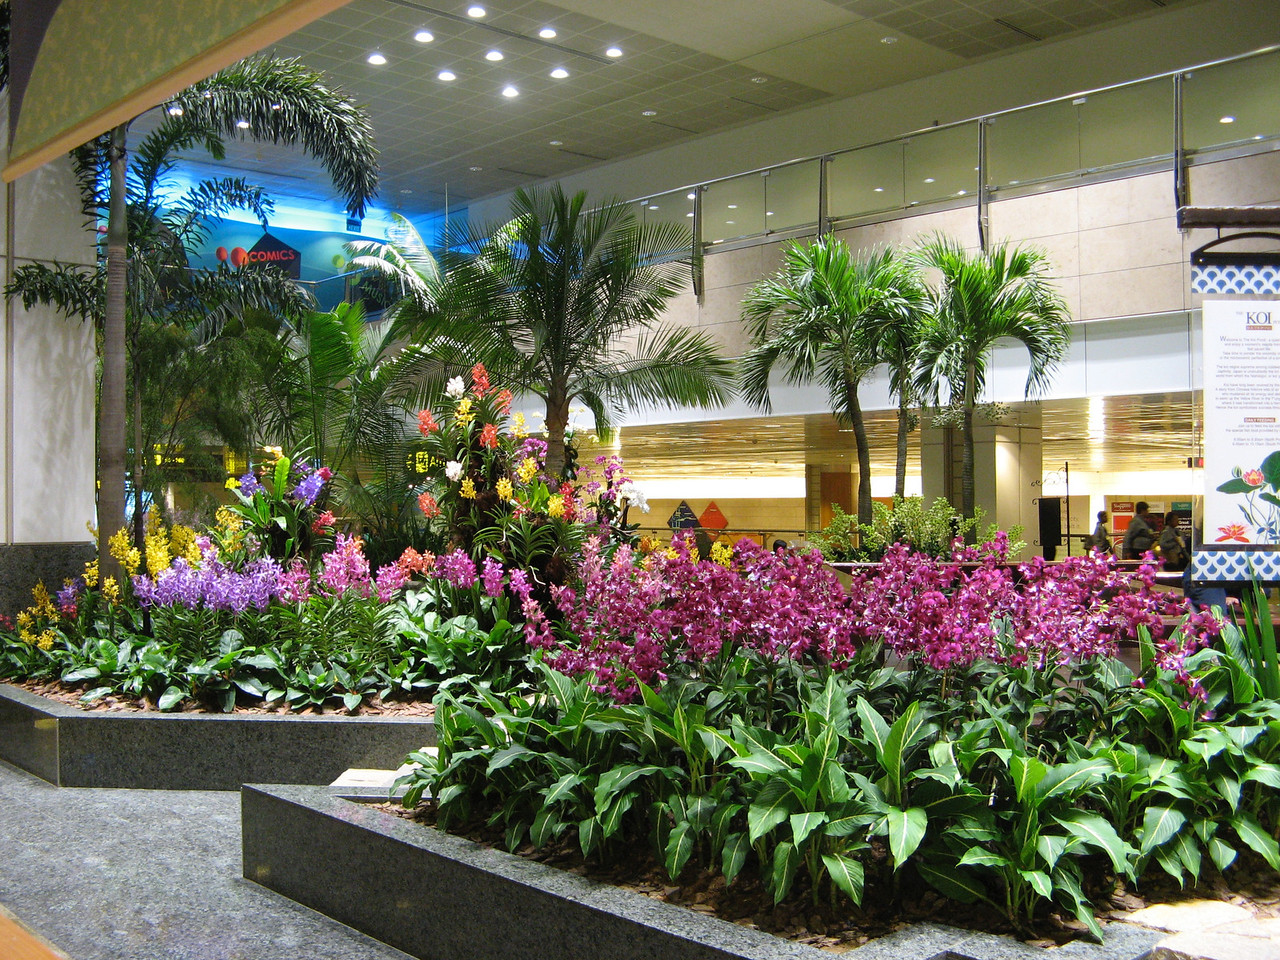 There are many gardens throughout the inside of the Singapore airport.